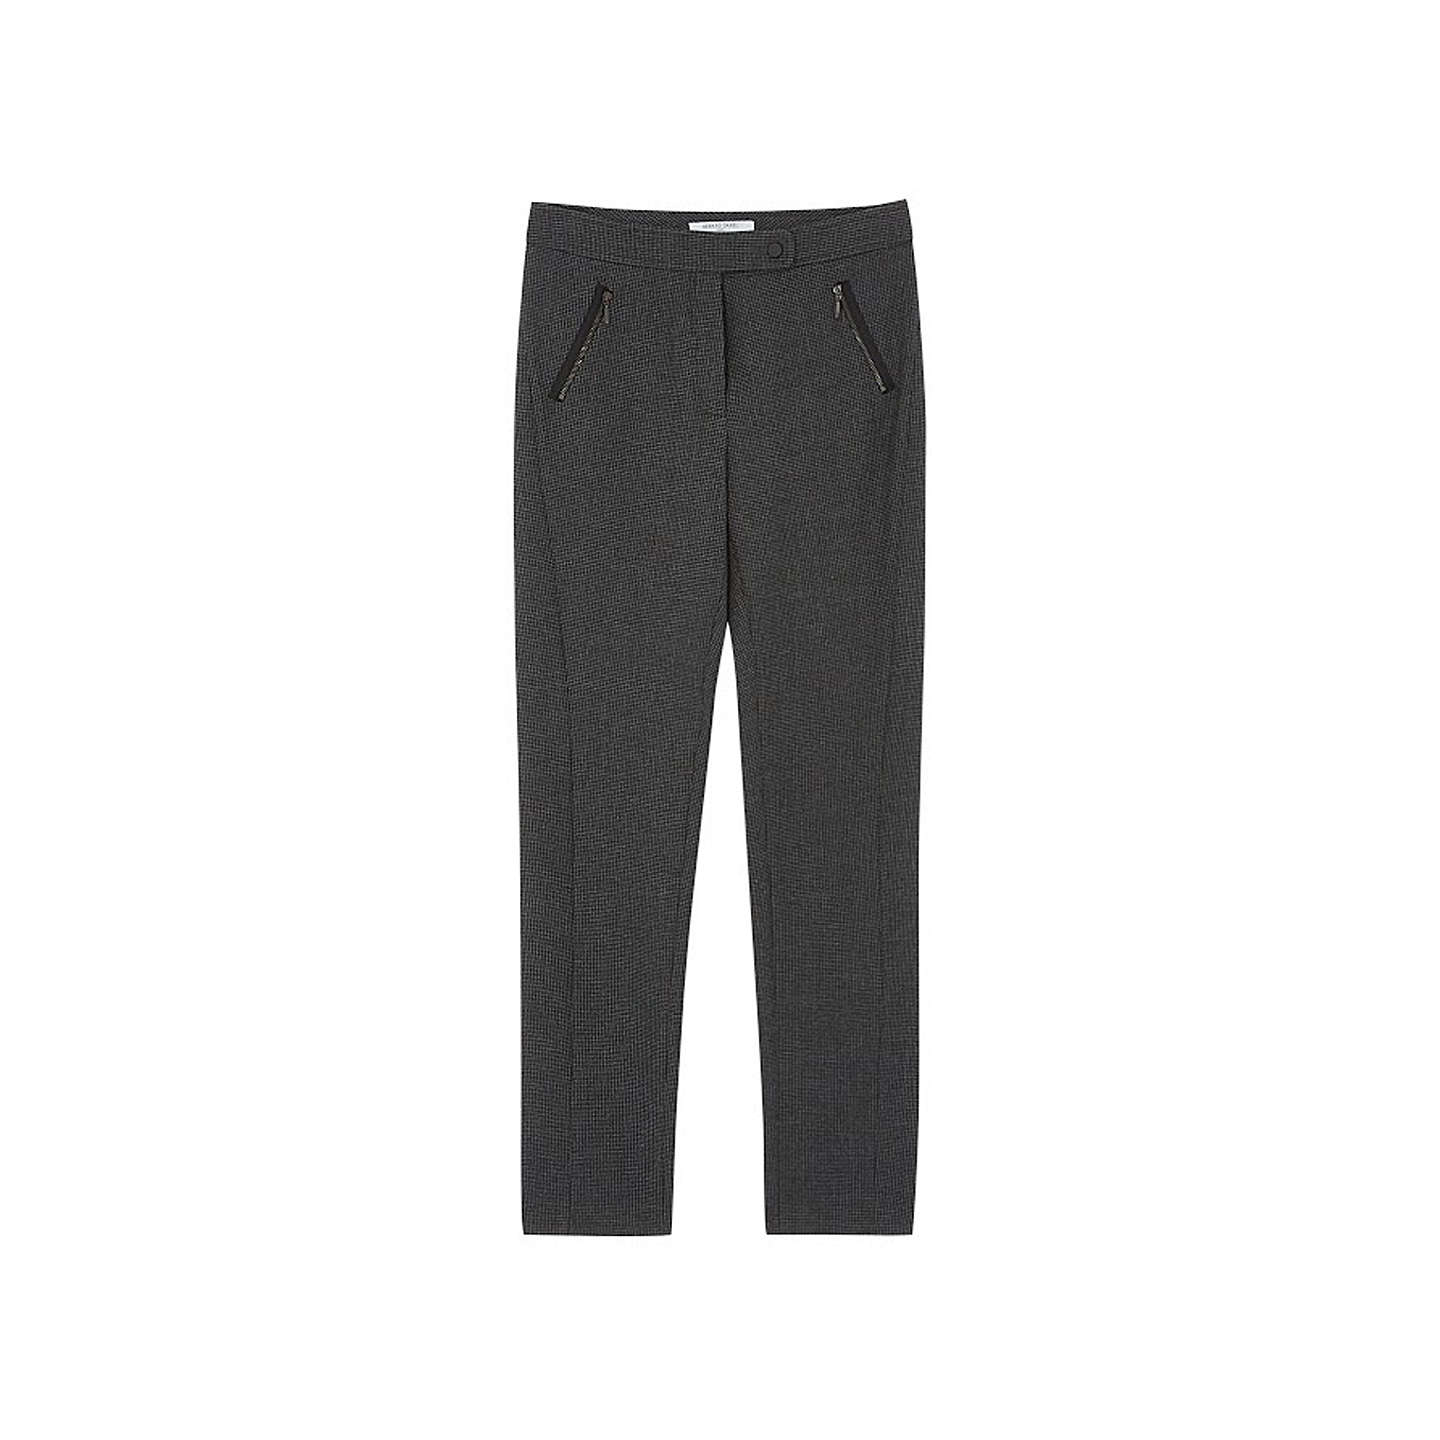 BuyGerard Darel Zip Pocket Trousers, Grey, 6 Online at johnlewis.com